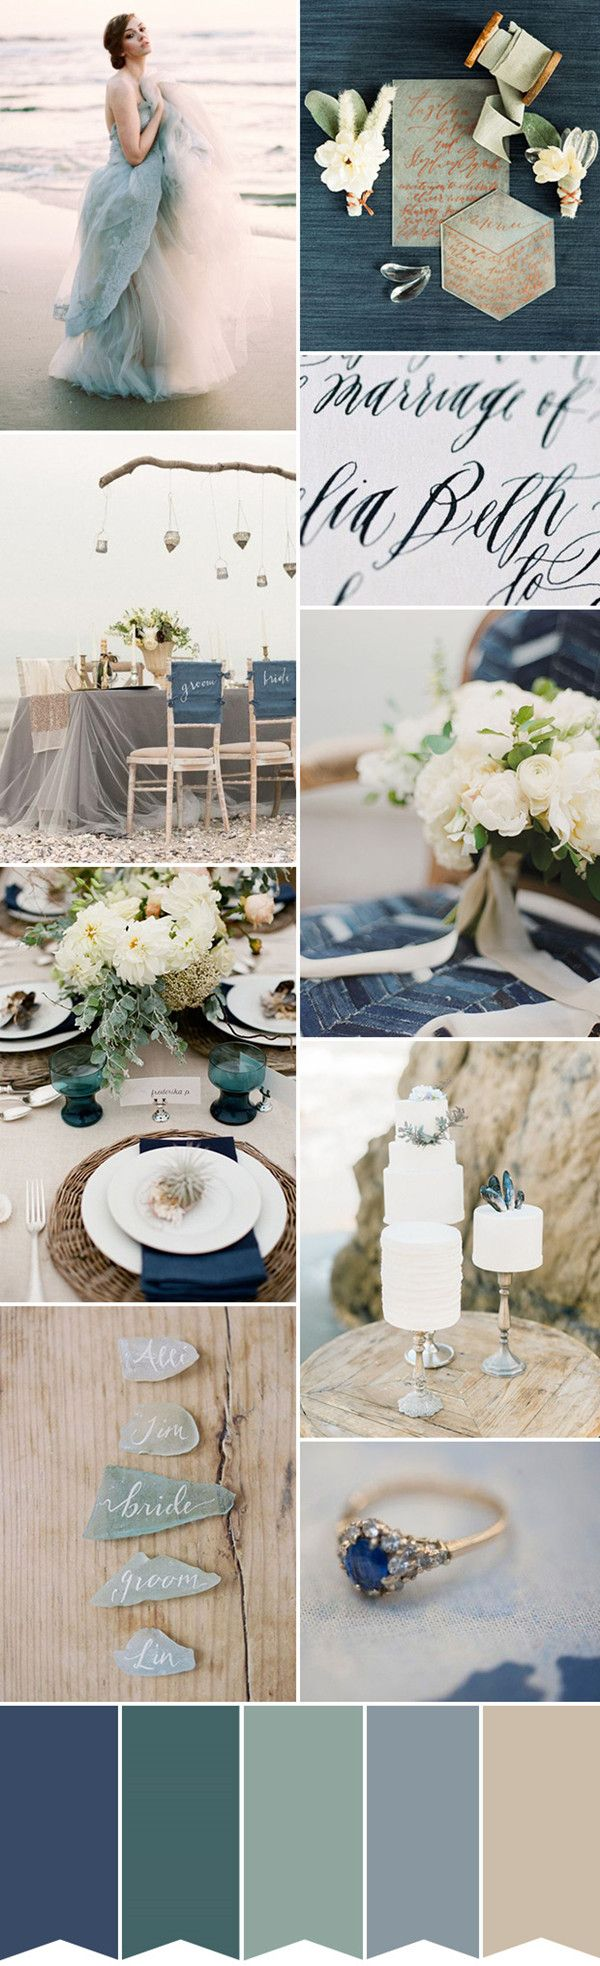 Top 10 Wedding Color Ideas for 2016 Trends | Wedding, Wedding and ...